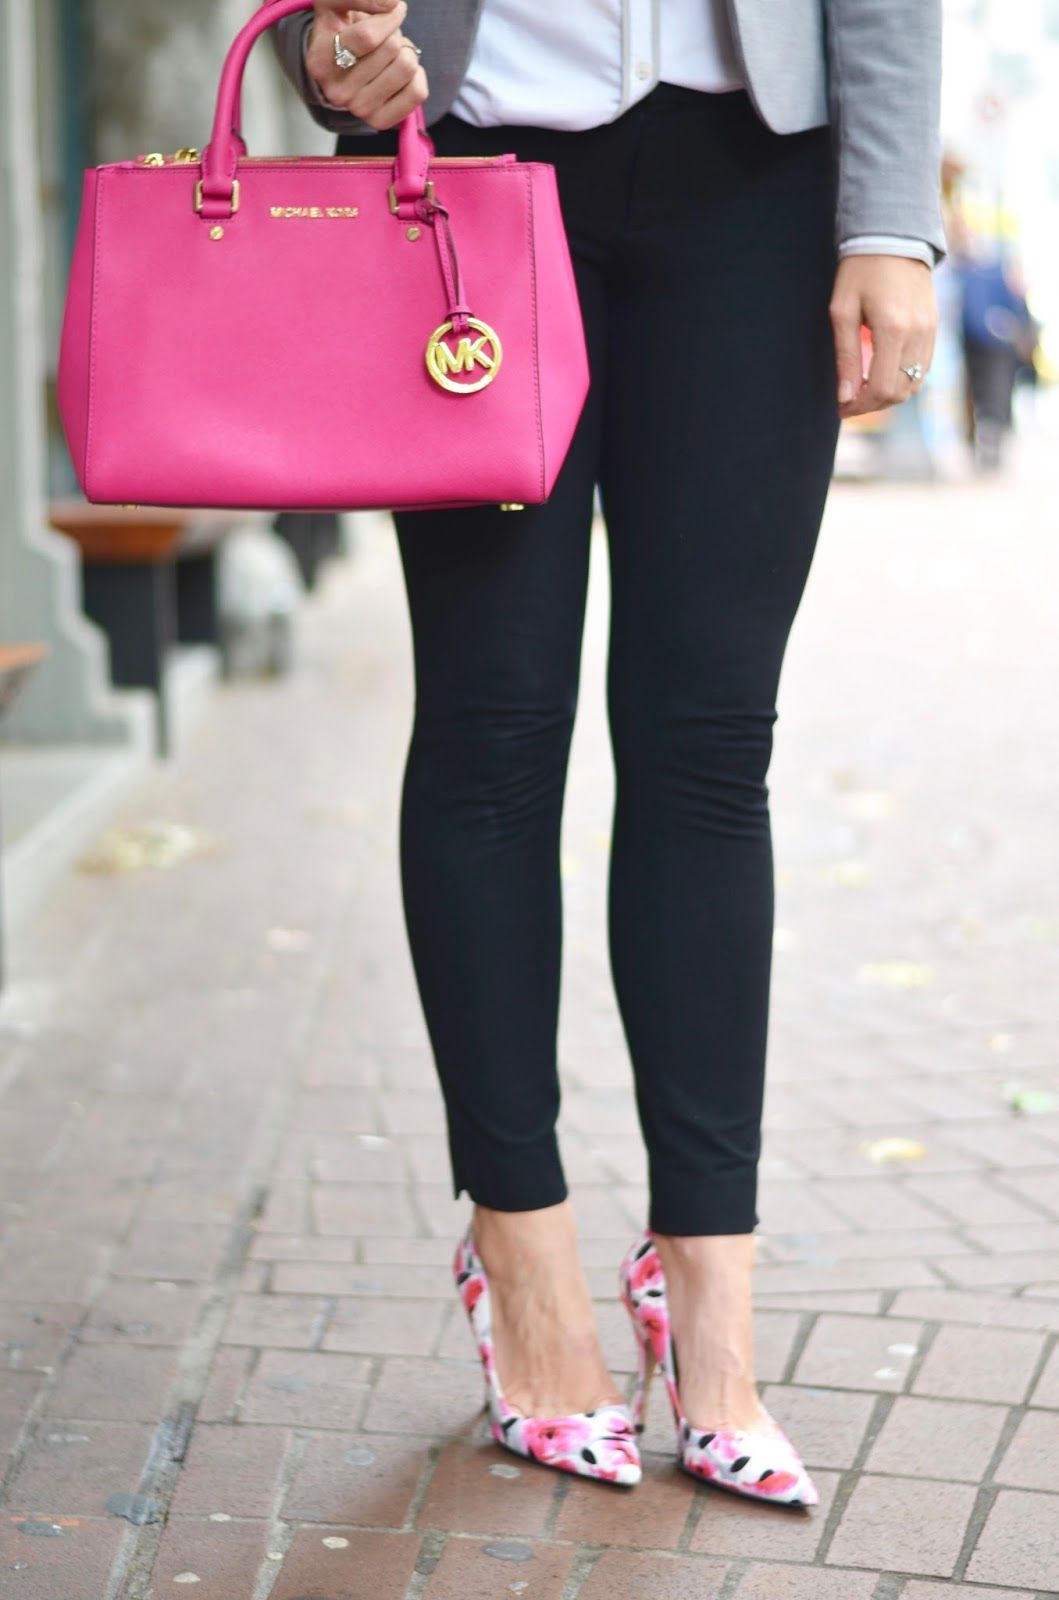 67e9a8cd3f Kate Spade floral pumps brighten any office outfit. Click through for full  outfit photos and style ideas.